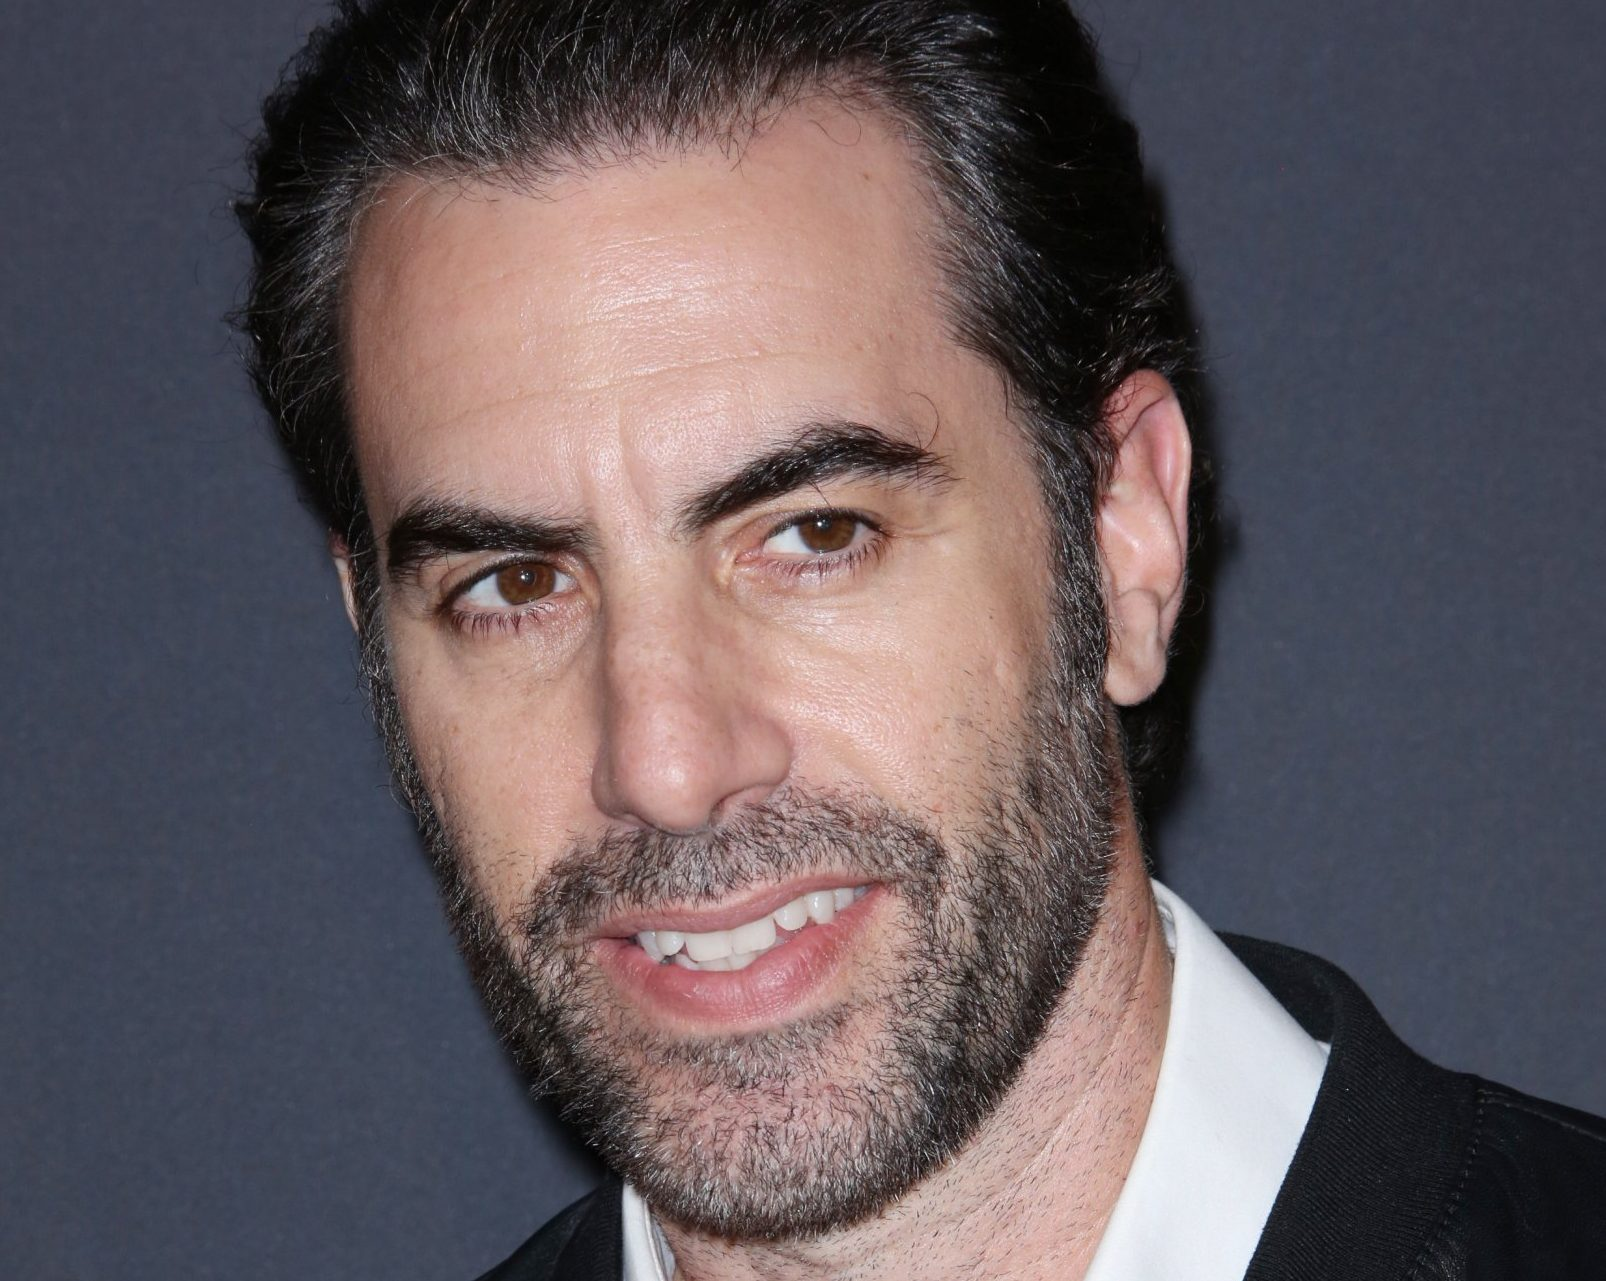 Sacha Baron Cohen age, career, net worth and wife as he returns to TV in Who Is America?